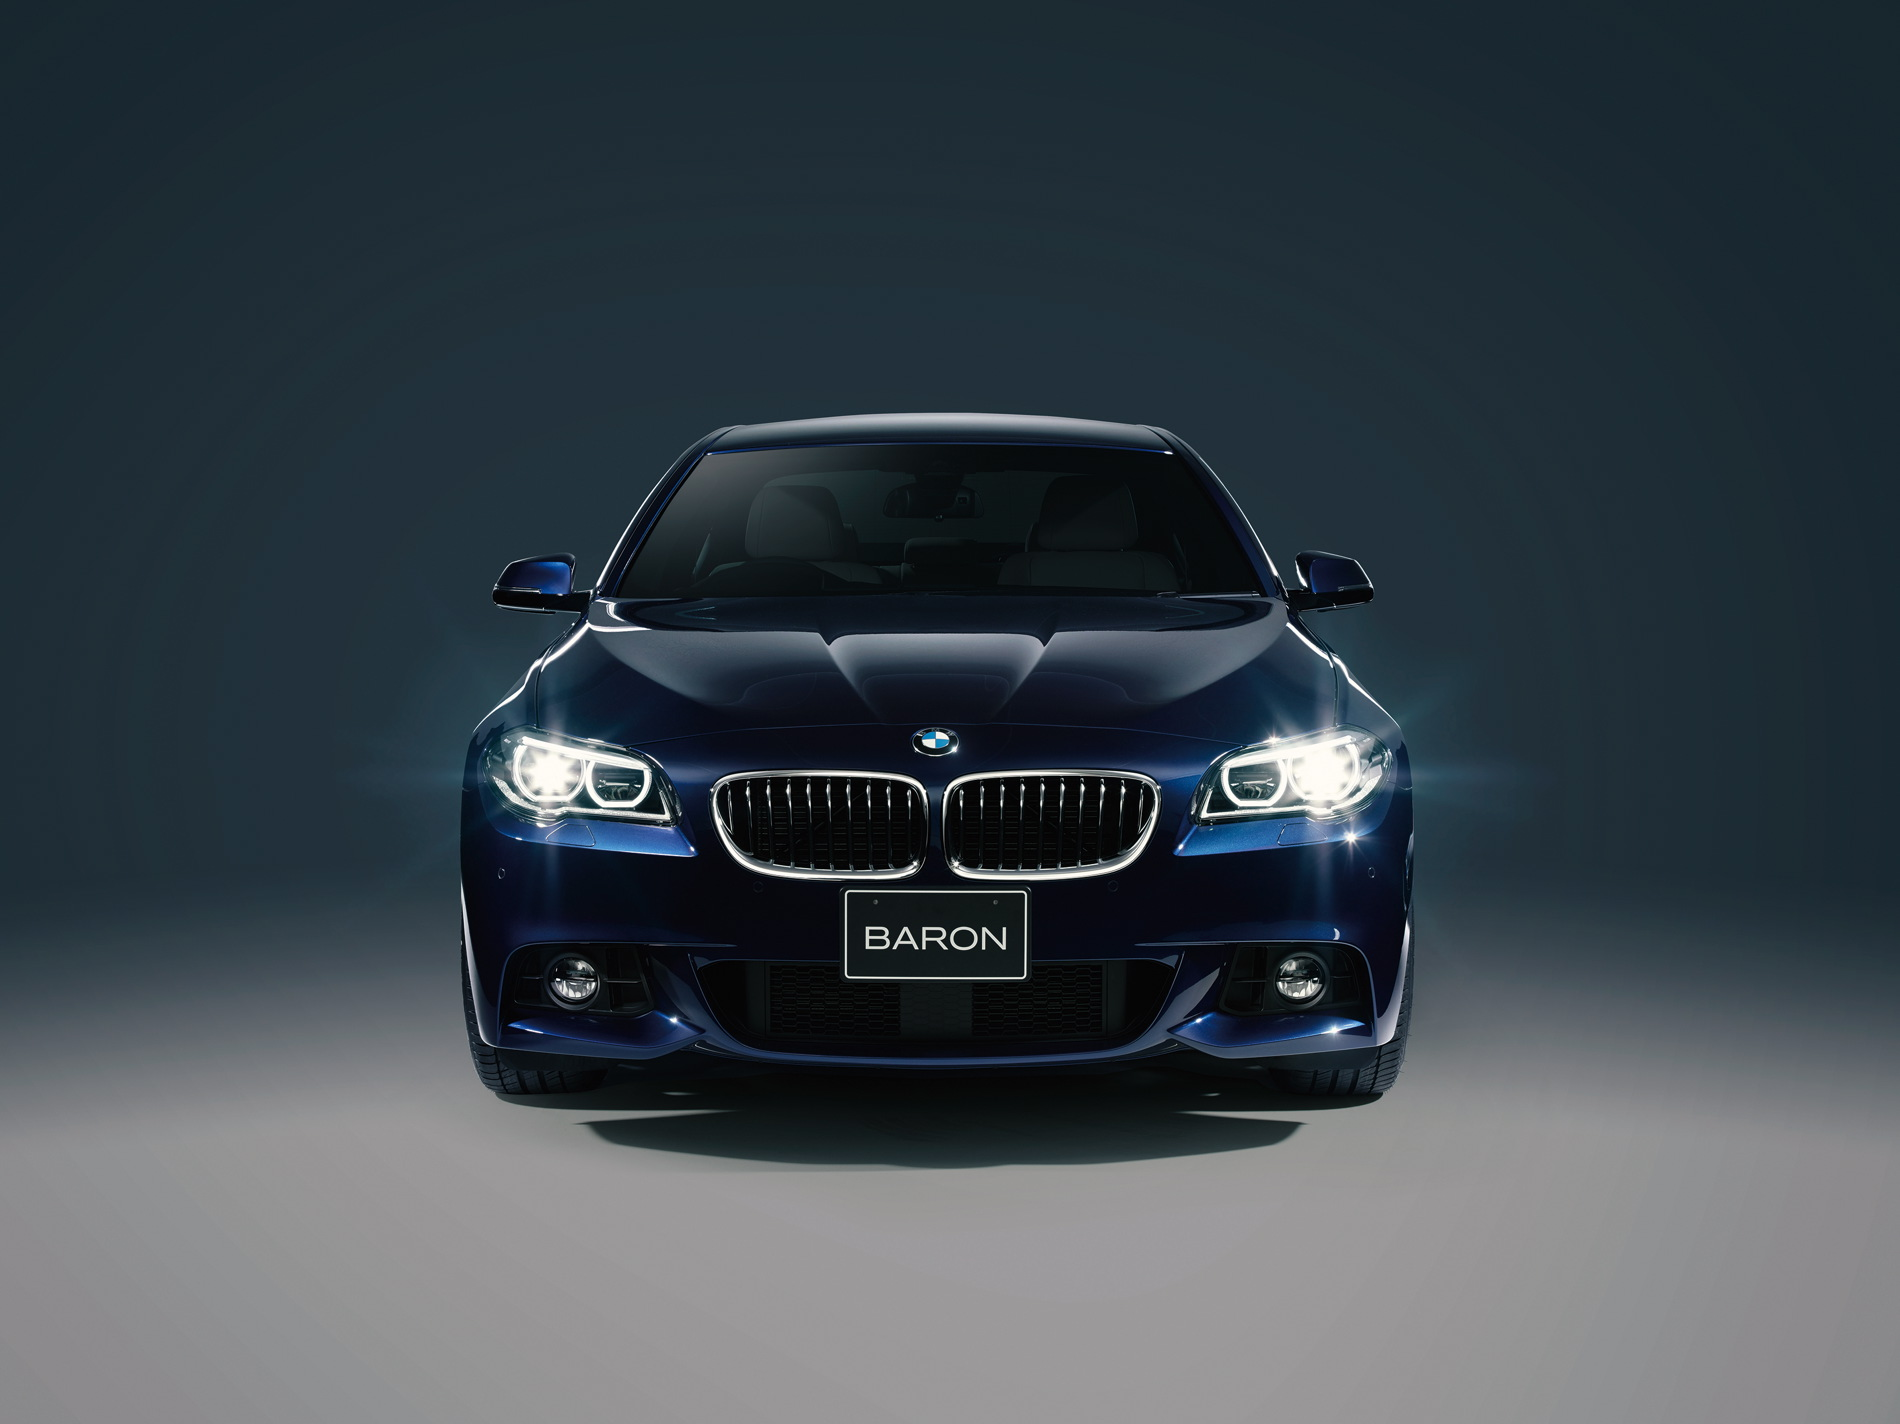 BMW 5 Series BARON 4